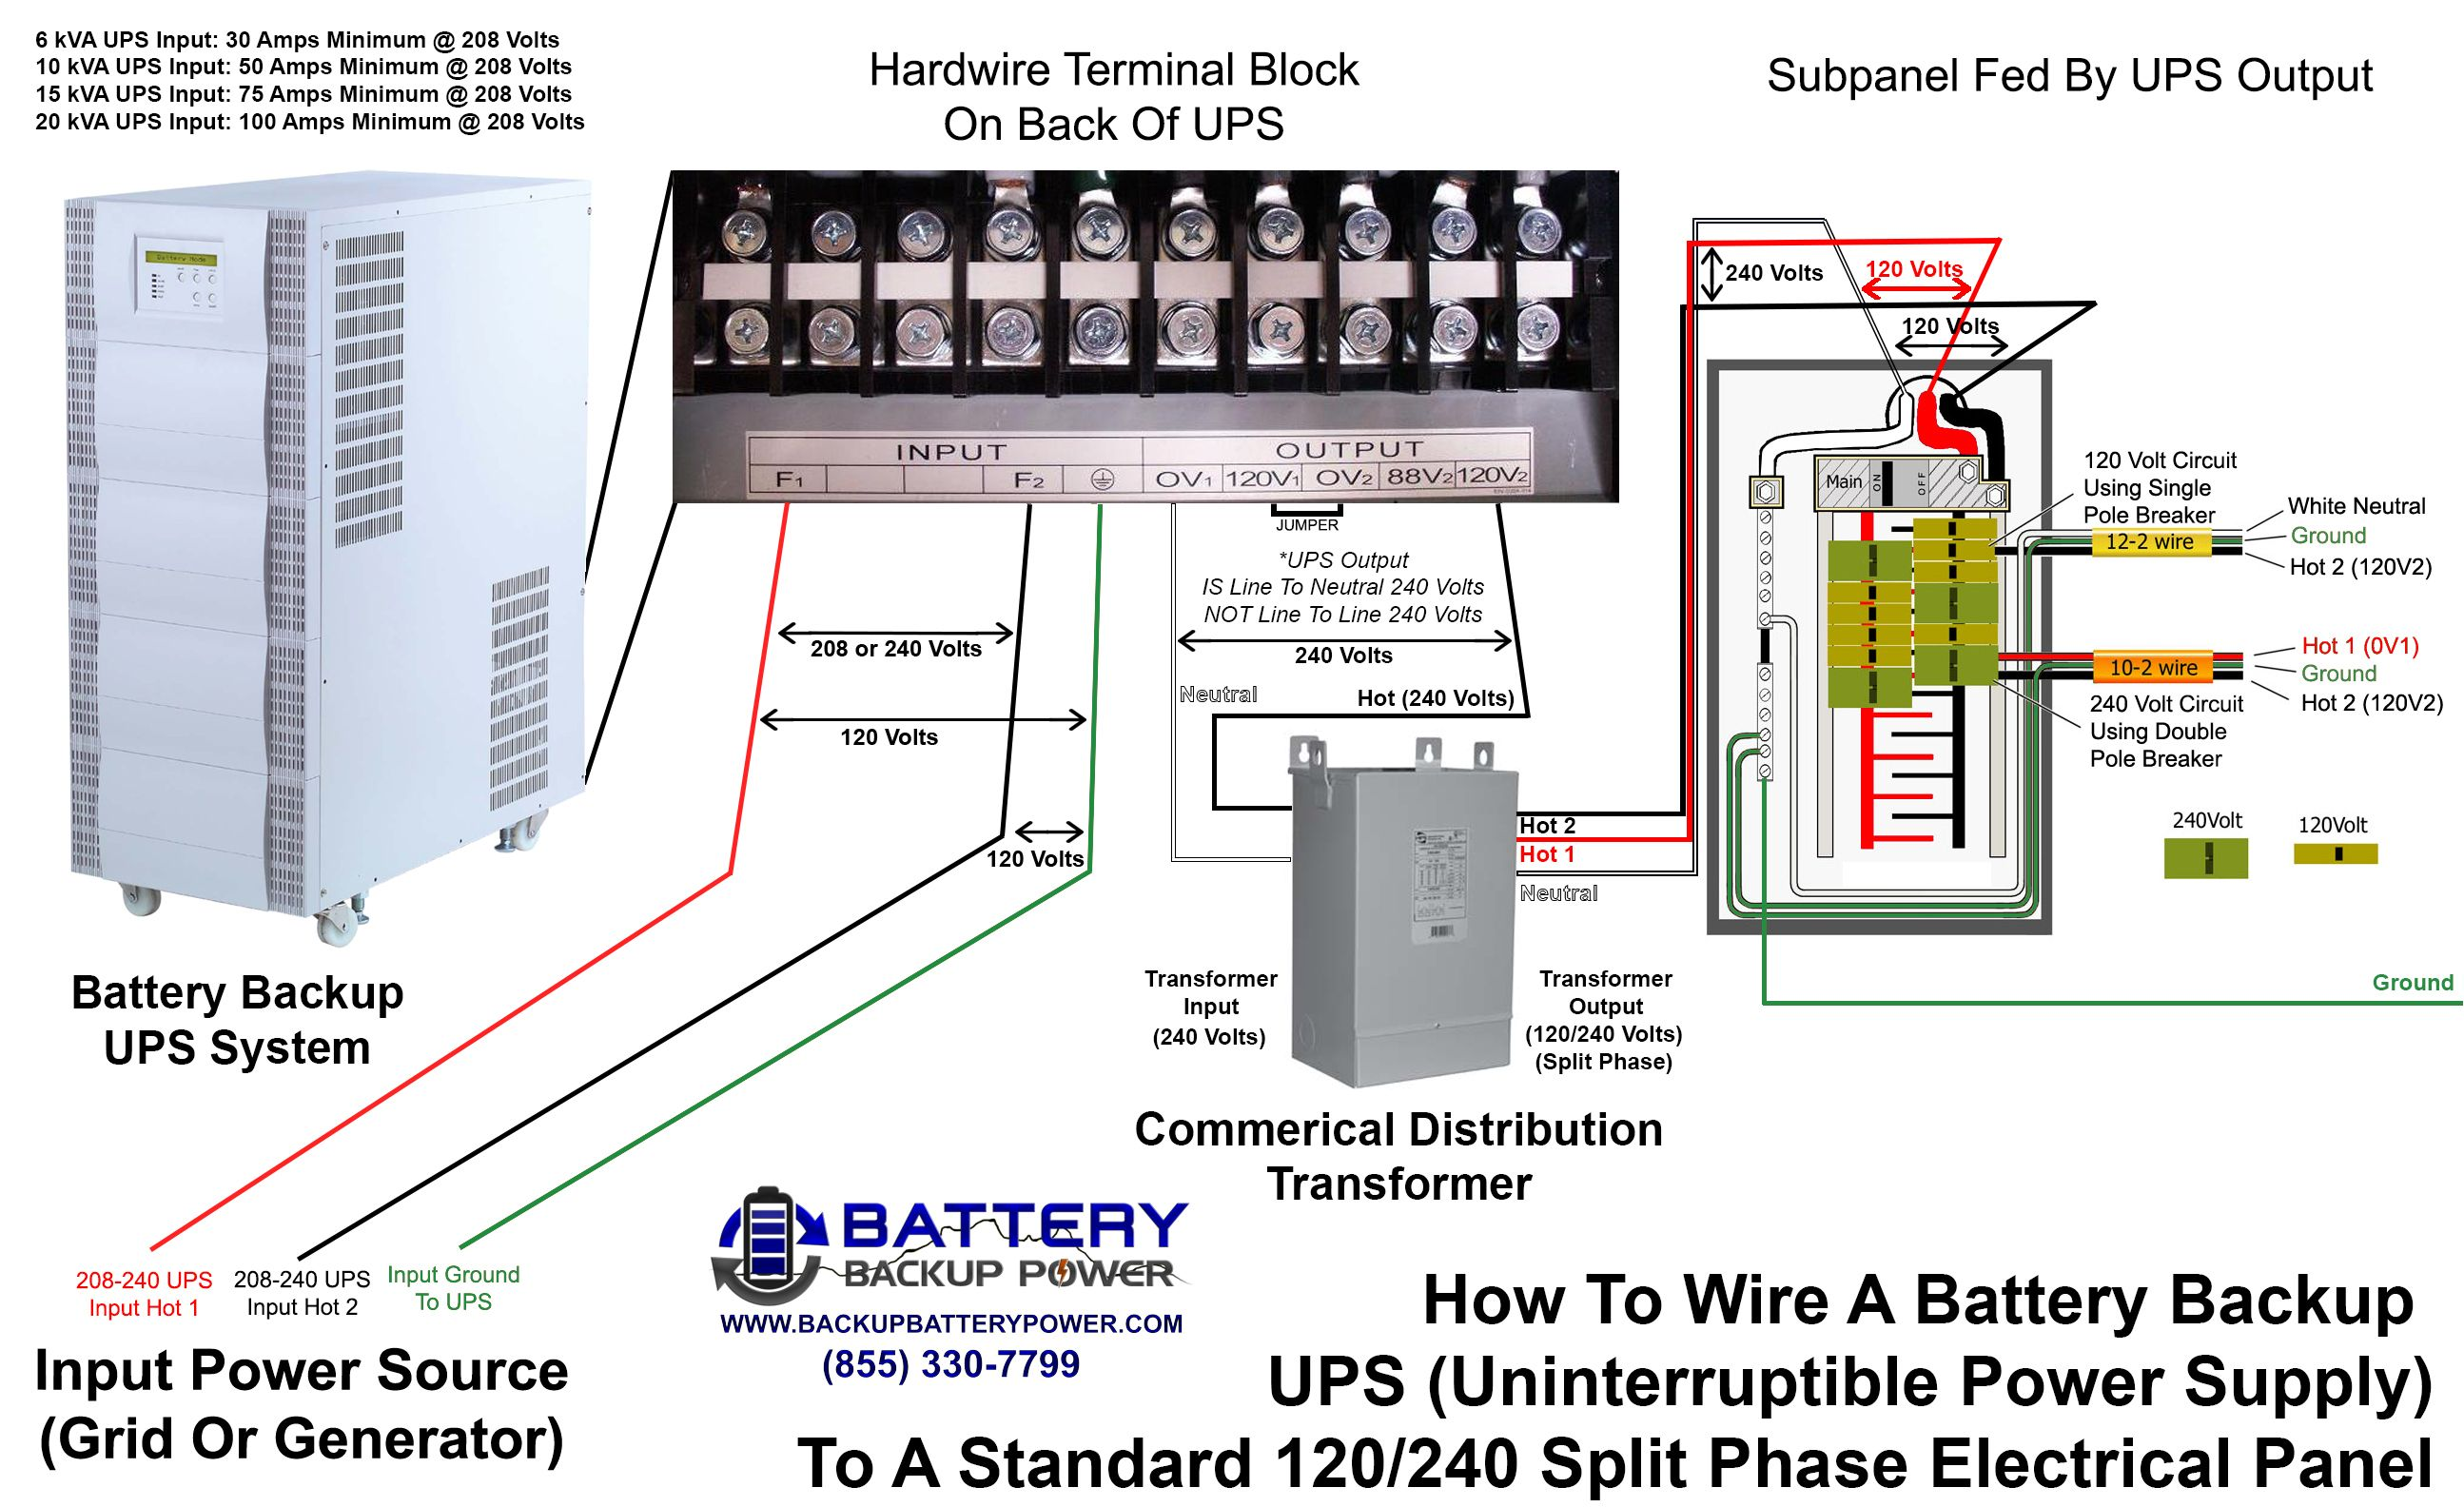 How to wire a ups to a standard 120 240 split phase electrical panel how to wire a ups to a standard 120 240 split phase electrical panel diagram cheapraybanclubmaster Image collections